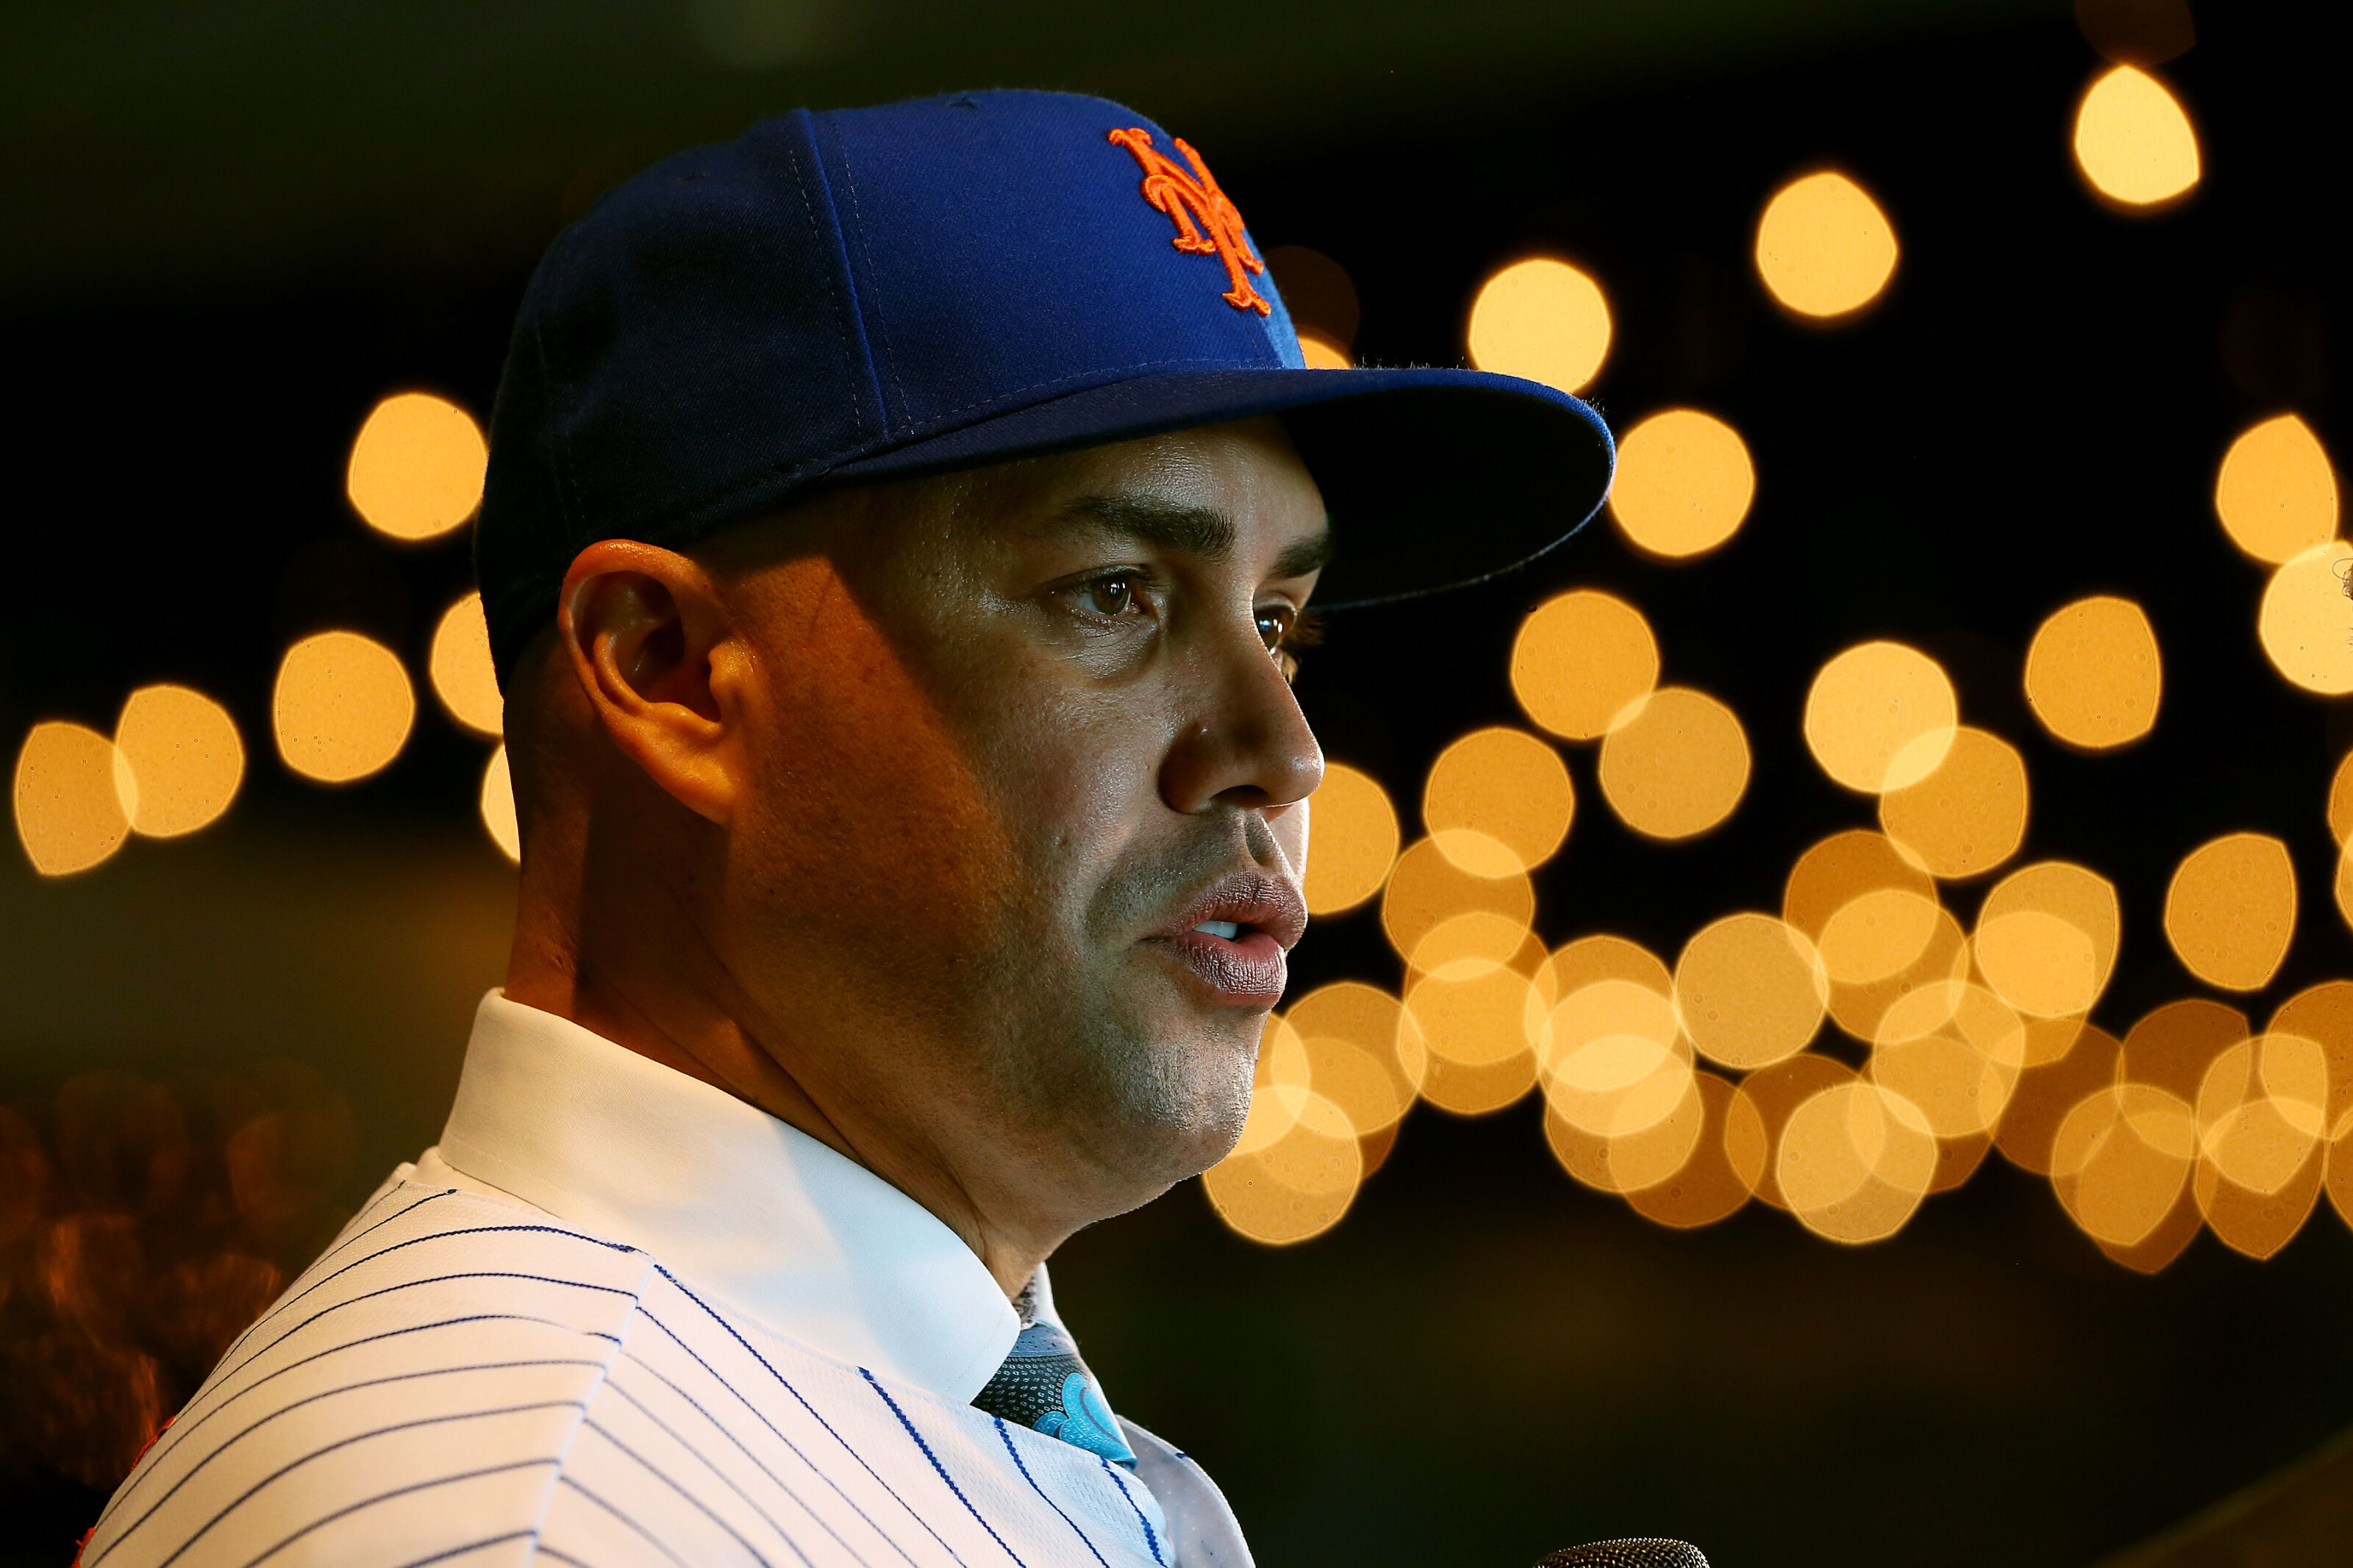 New York Mets were right to 'get rid' of Carlos Beltran